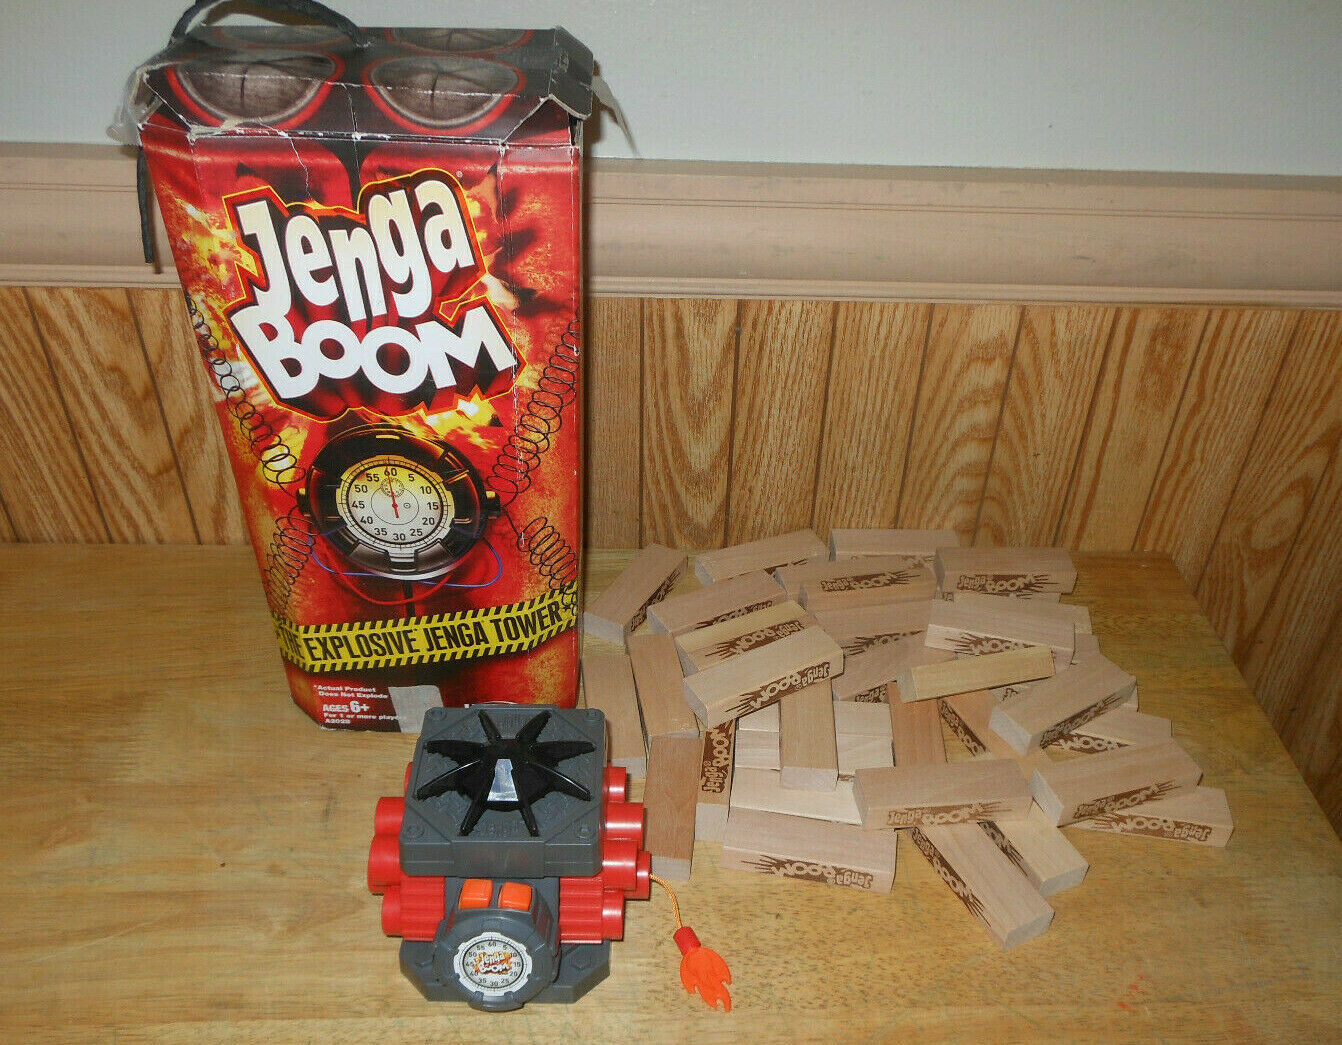 Primary image for Jenga Boom Puzzle Defeat The Puzzle Before The Puzzle Defeats You Bang Complete